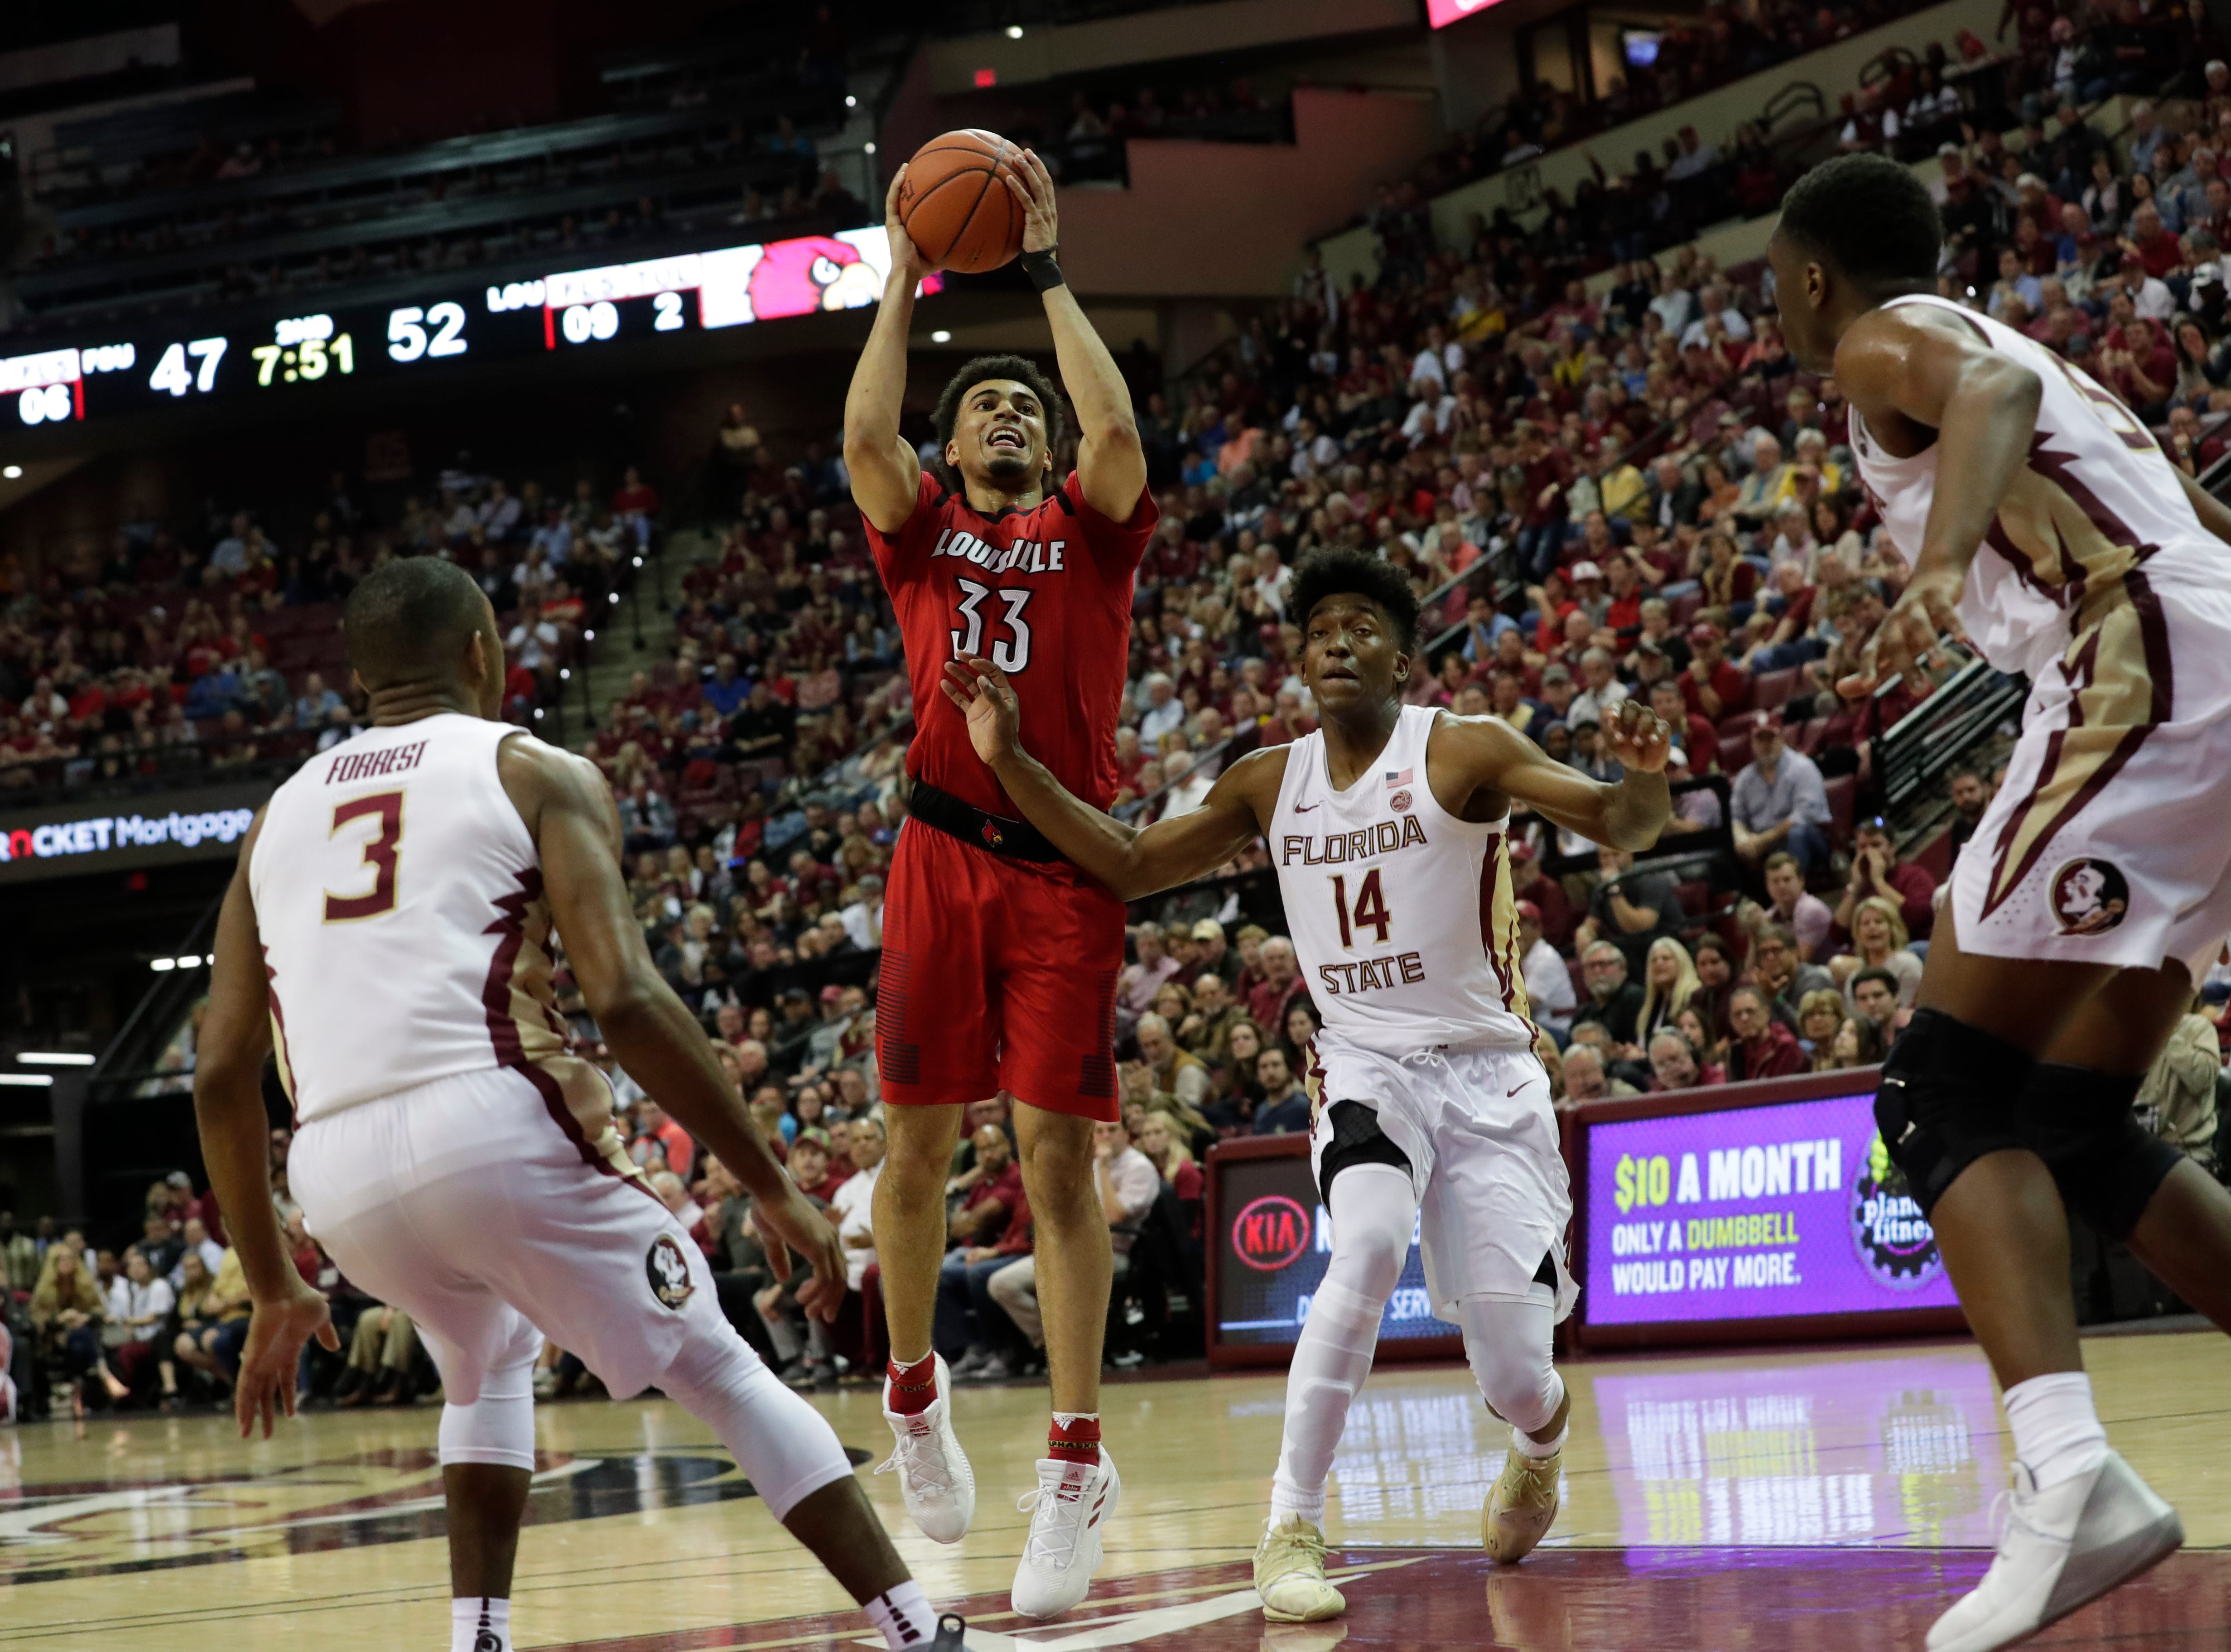 Louisville Cardinals forward Jordan Nwora (33) shoots from inside the paint over Florida State Seminoles guard Terance Mann (14), Florida State Seminoles guard Trent Forrest (3), and Florida State Seminoles forward Mfiondu Kabengele (25). The Florida State Seminoles host the Louisville Cardinals at the Tucker Civic Center, Saturday Feb. 9, 2019.